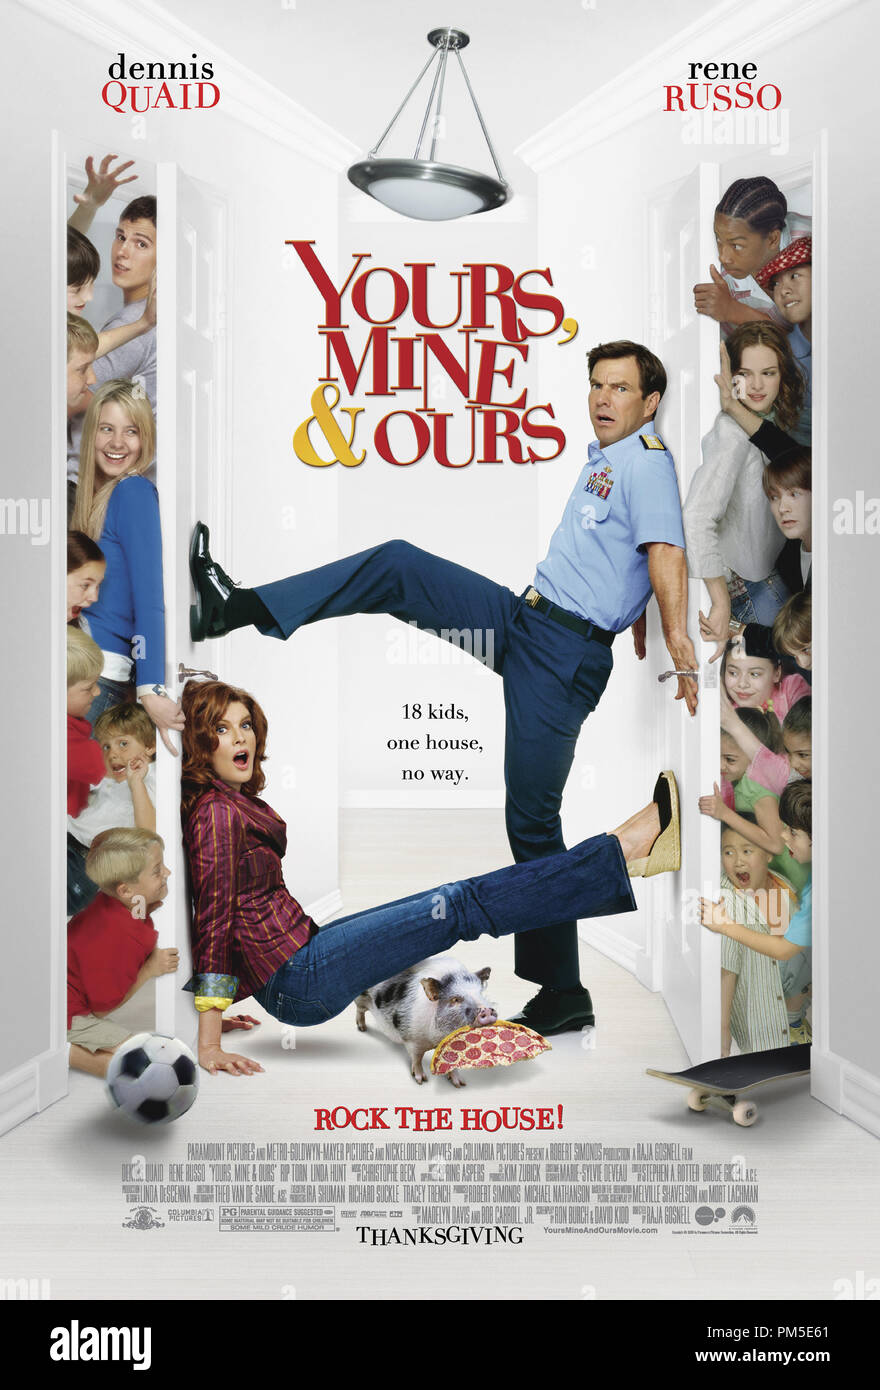 Poster Art from 'Yours, Mine and Ours' Poster © 2005 Paramount Pictures   File Reference # 30736762THA  For Editorial Use Only -  All Rights Reserved - Stock Image